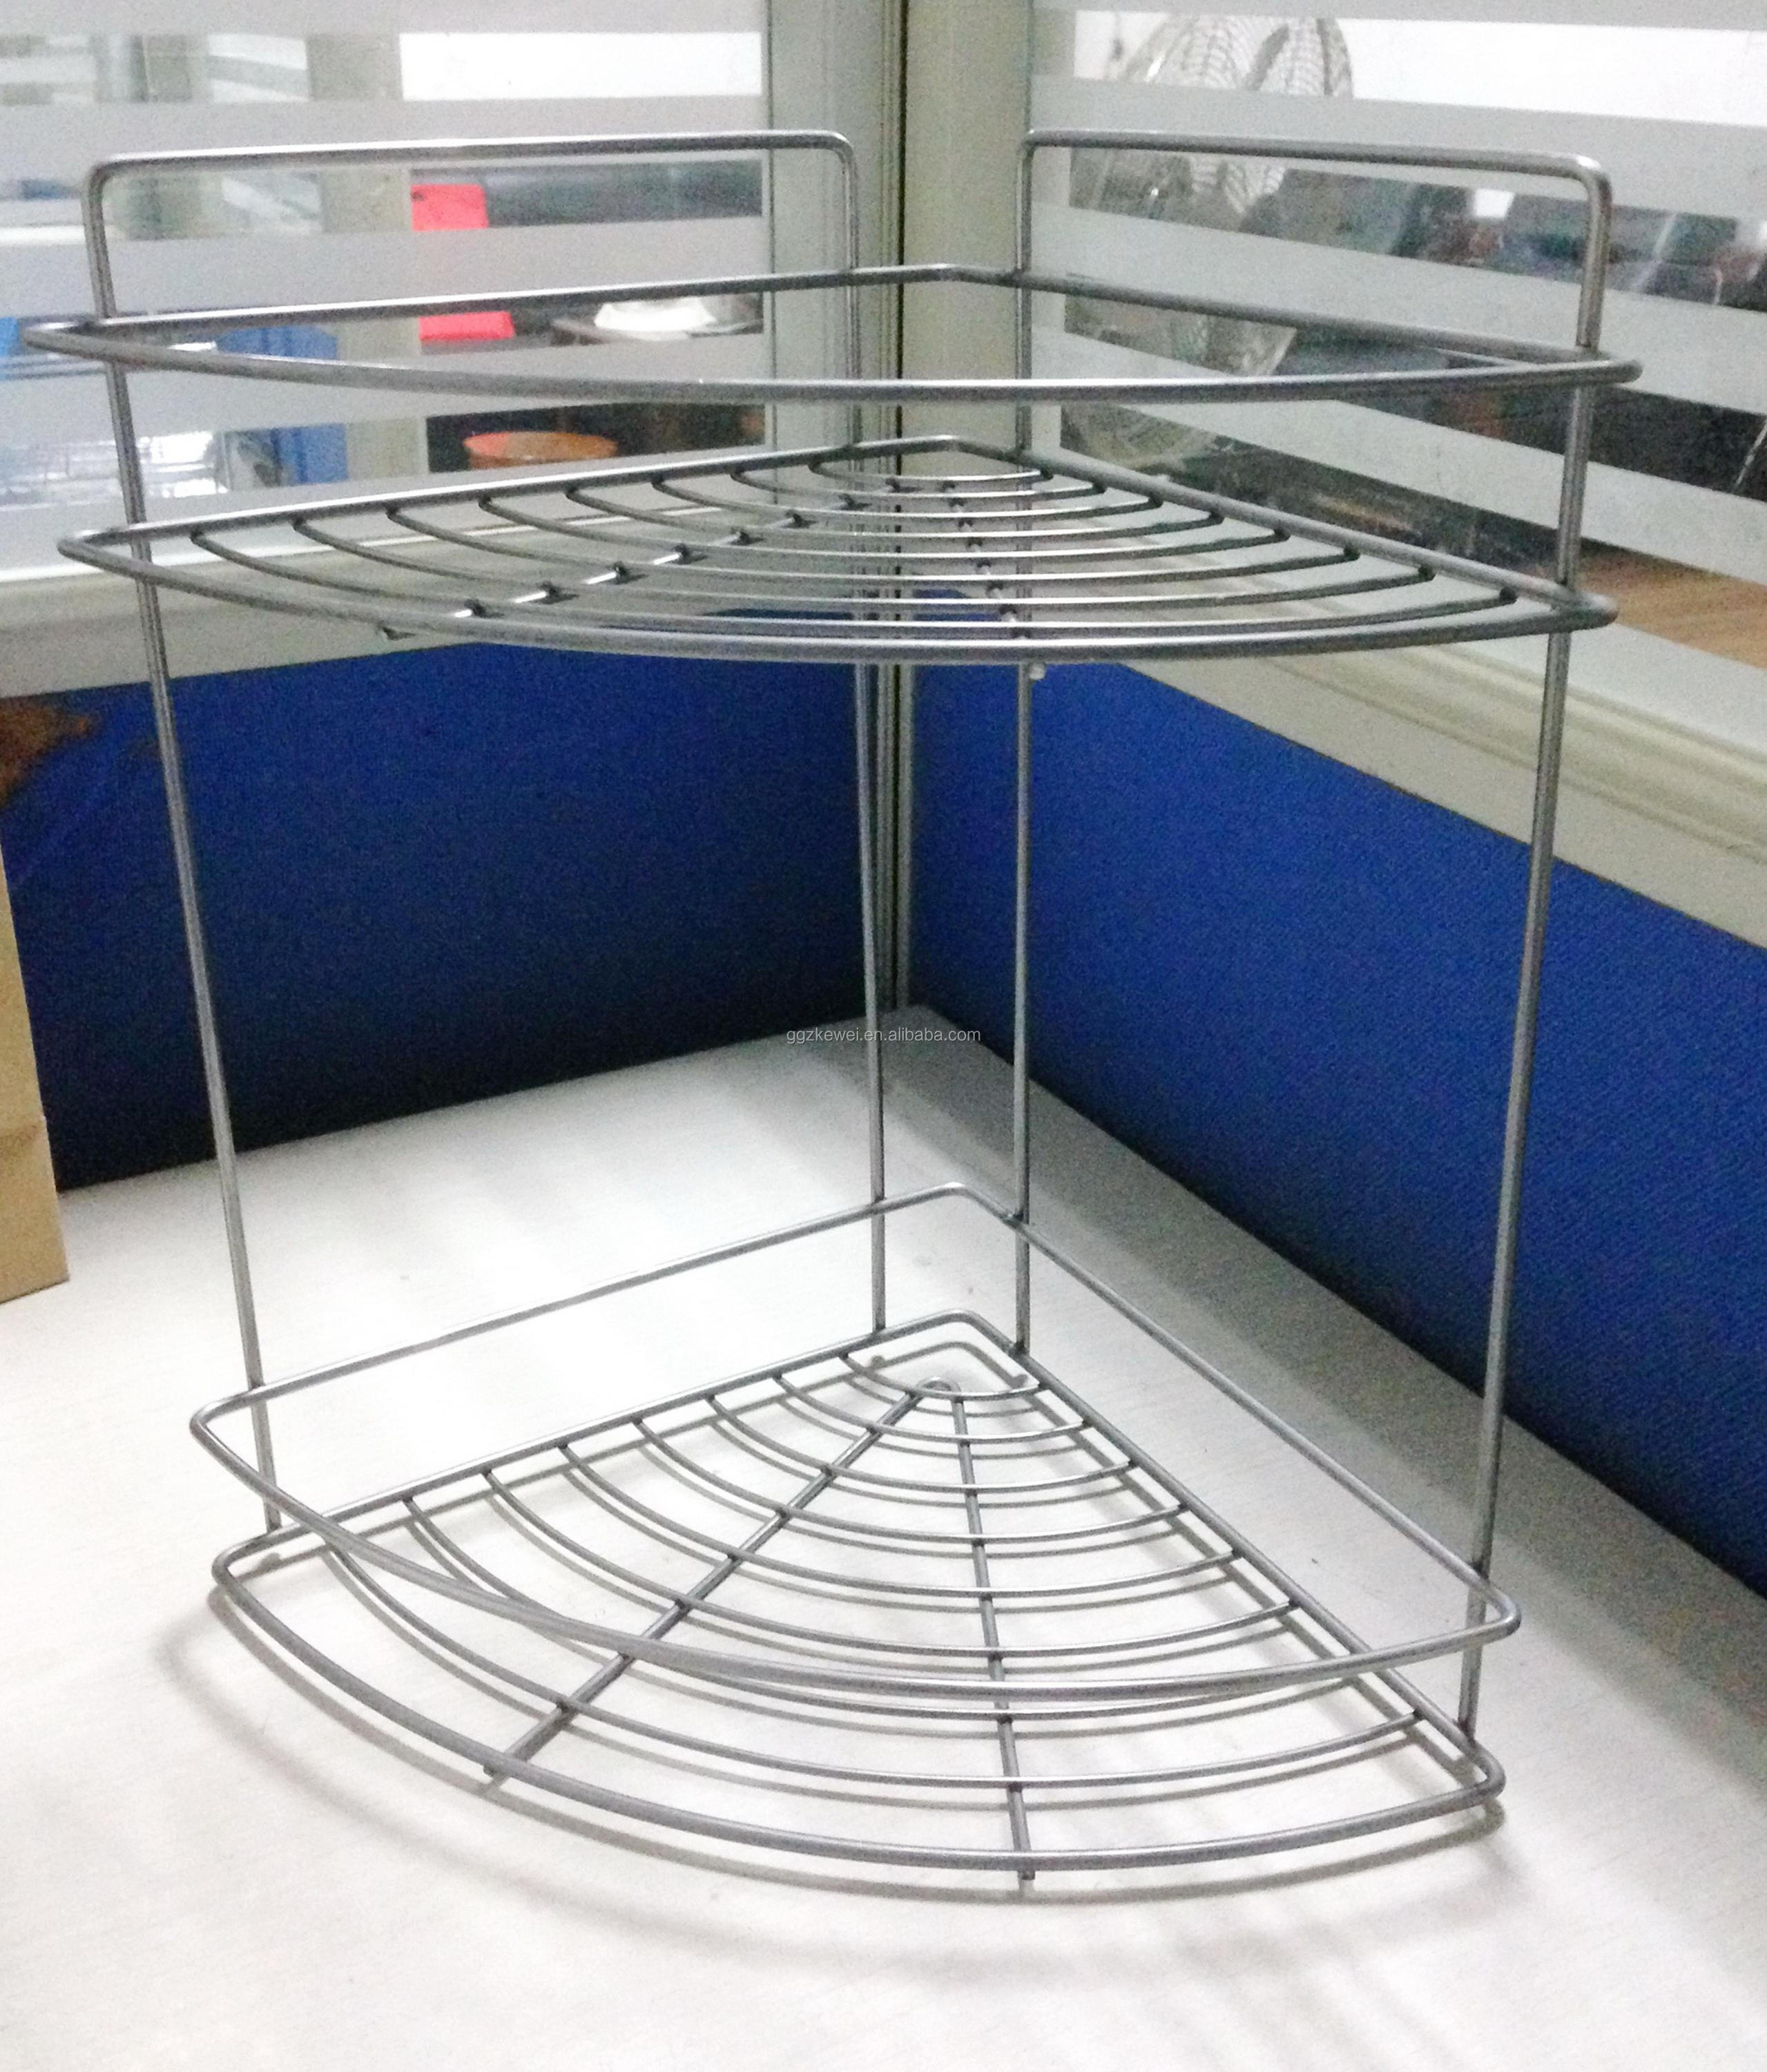 Stainless Steel Kitchen Plate Rack Stainless Steel Kitchen Plate Rack Suppliers and Manufacturers at Alibaba.com & Stainless Steel Kitchen Plate Rack Stainless Steel Kitchen Plate ...